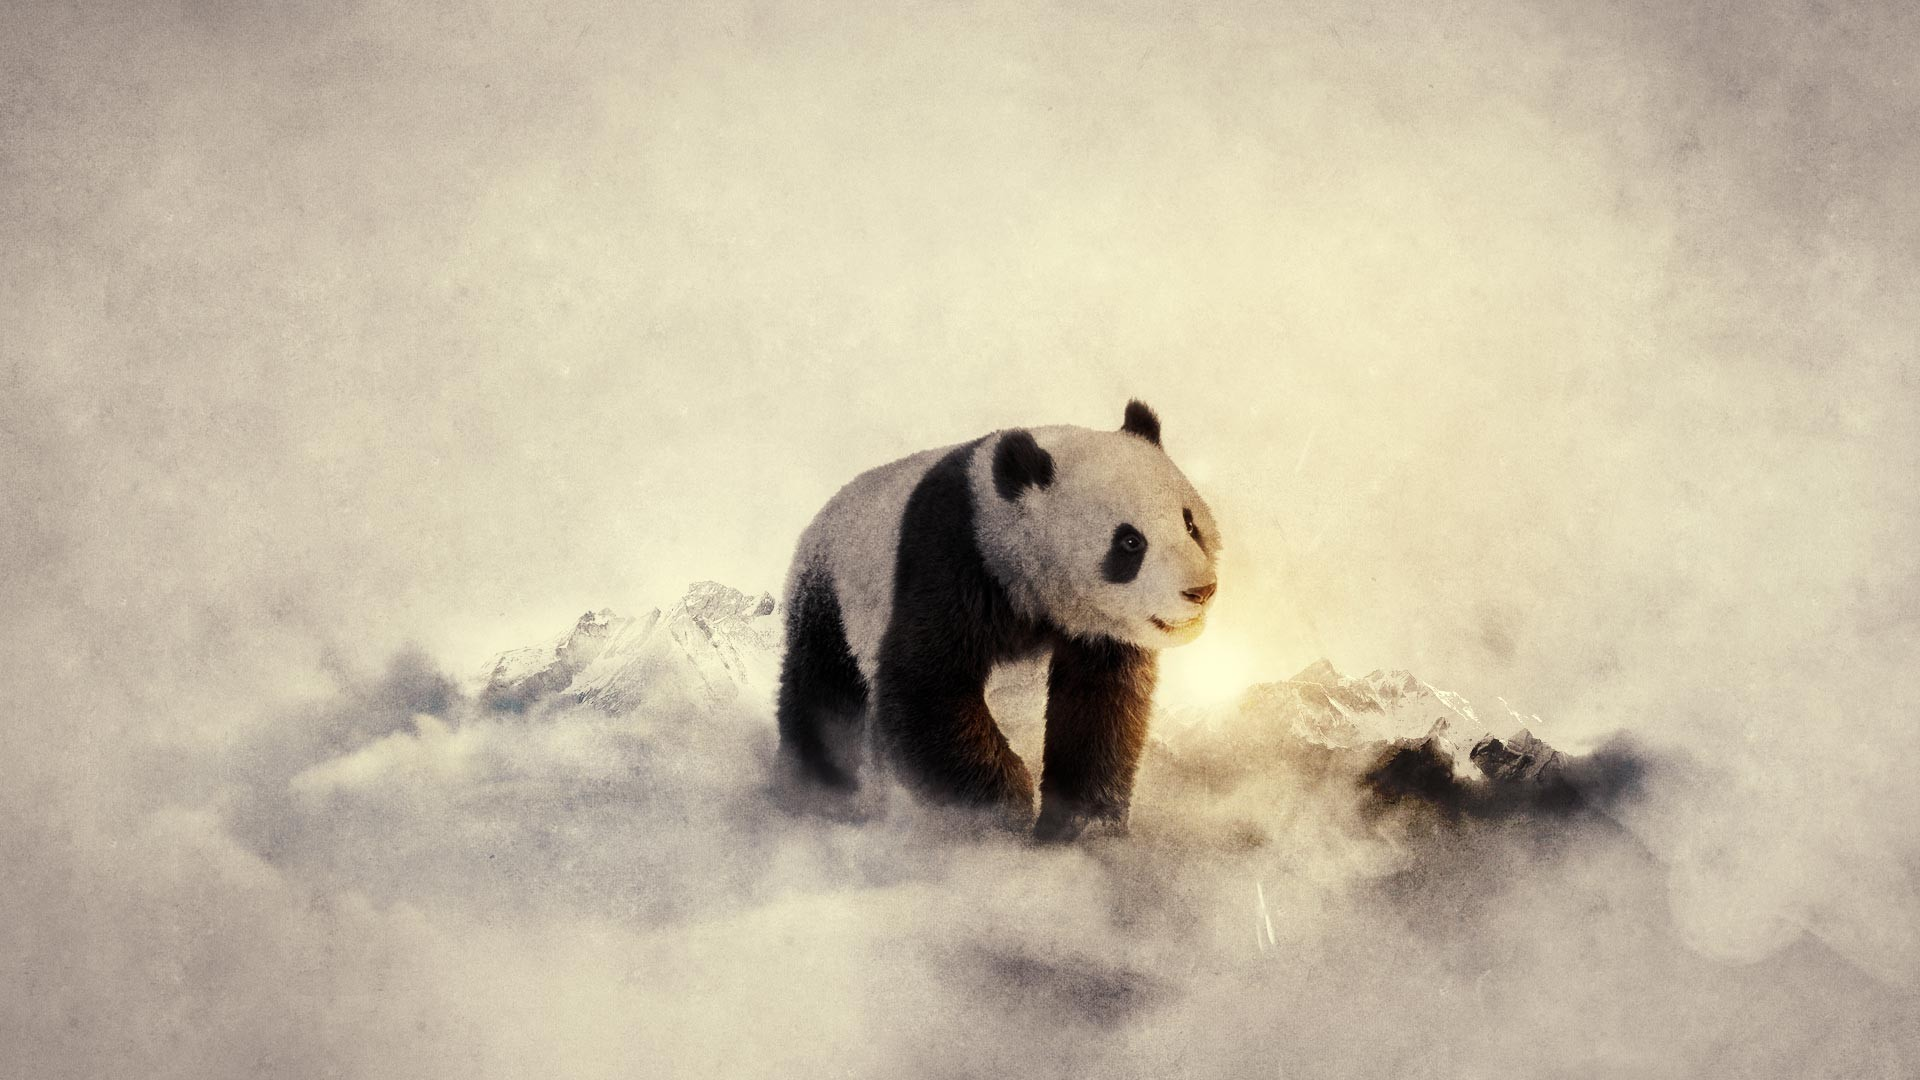 Black and white winter snow animals cold panda bears ...